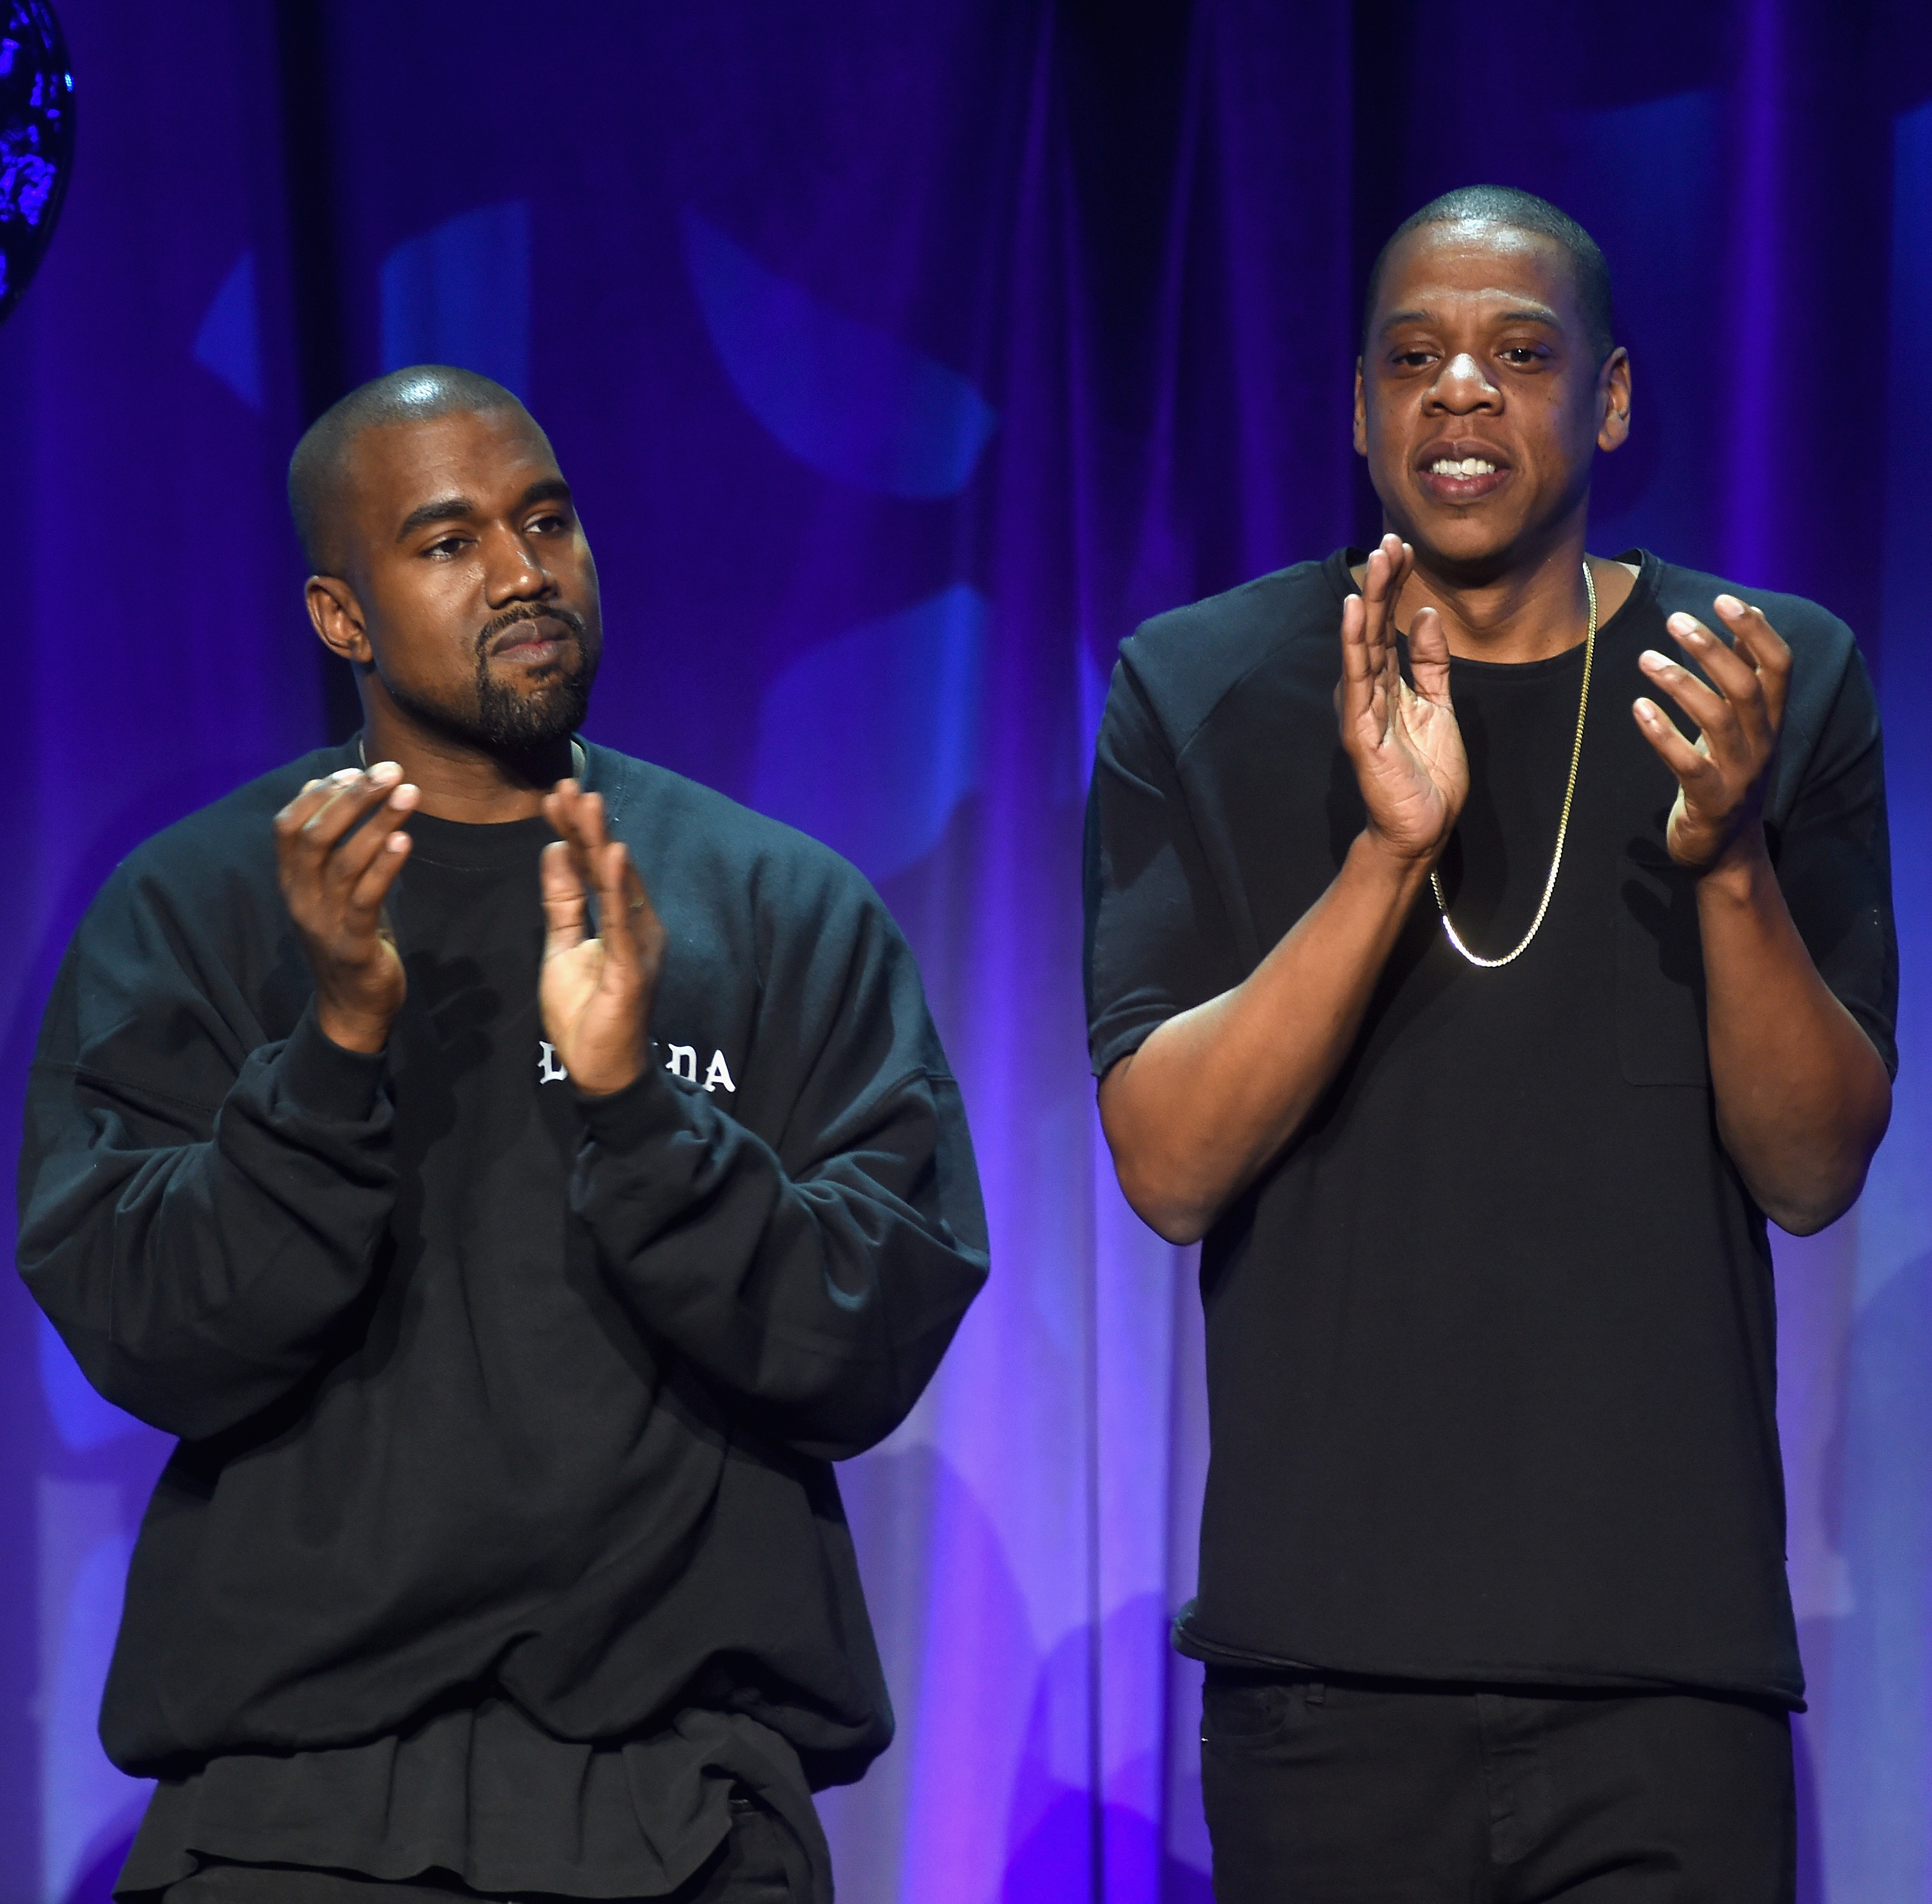 Jay Z and Kanye West Tidal Event 2015